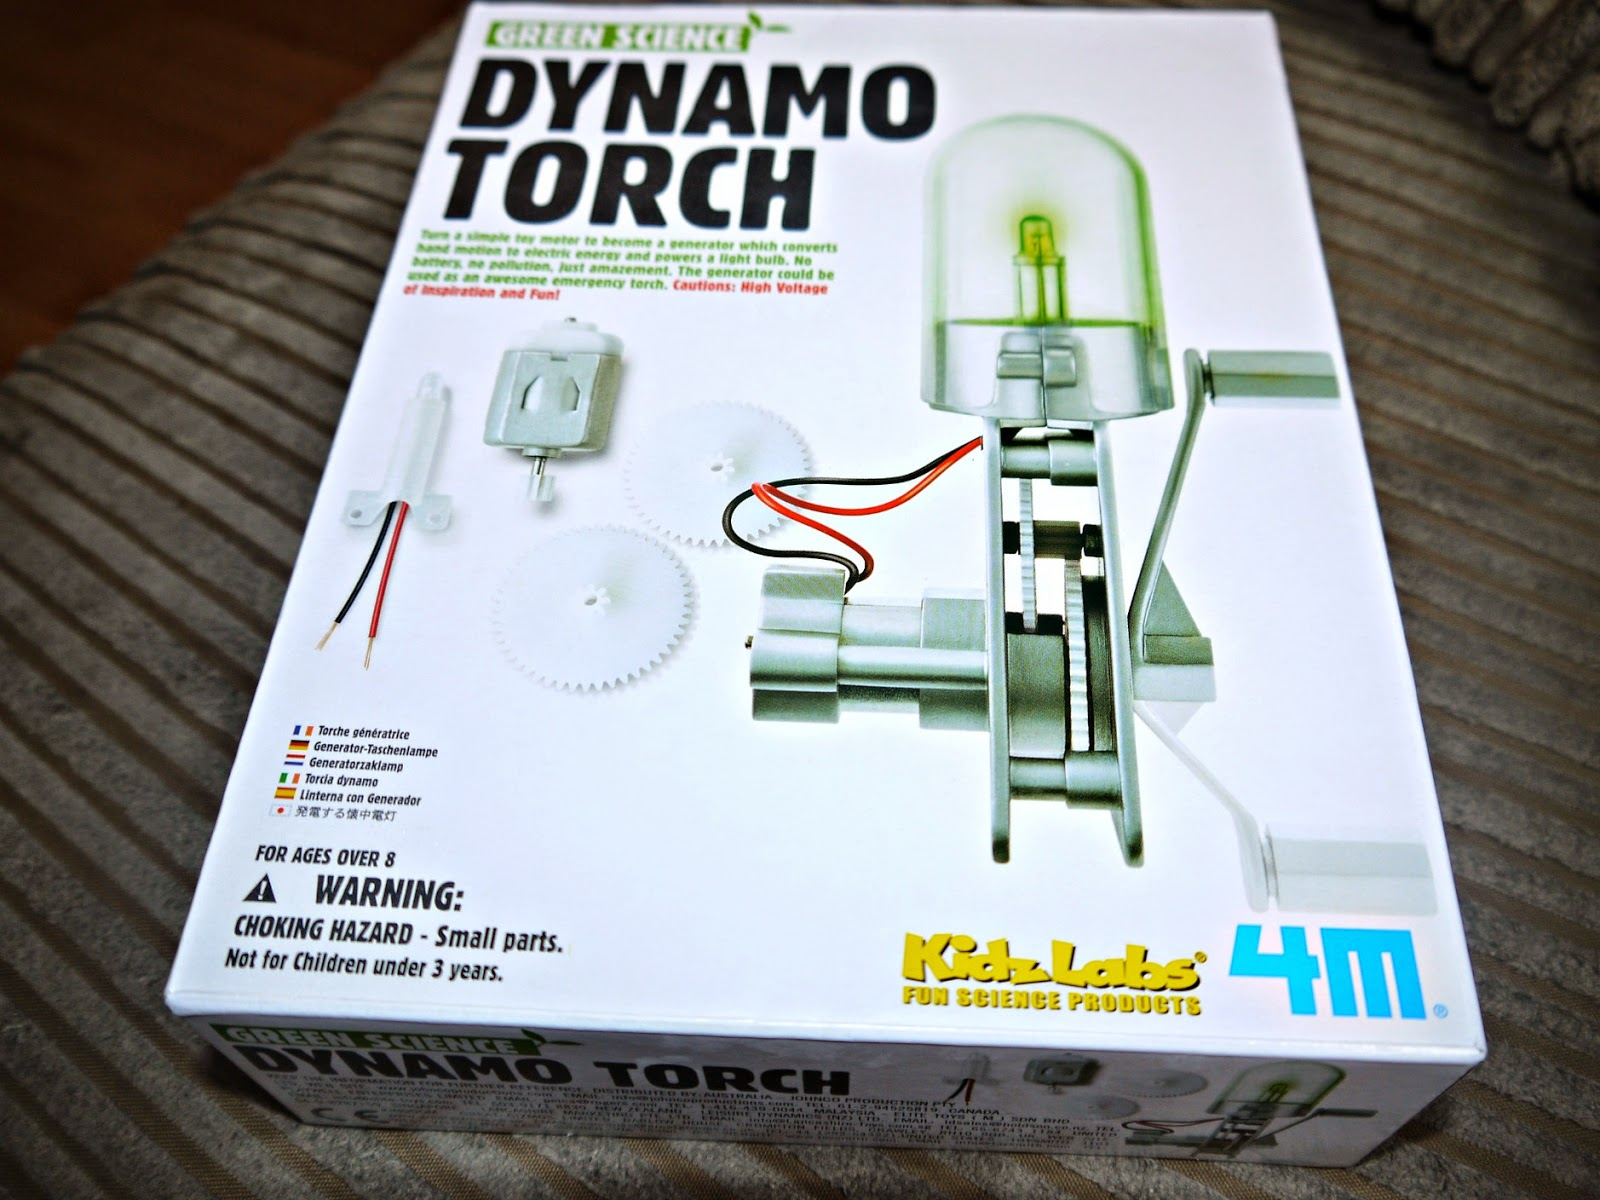 Inside The Wendy House Green Science Dynamo Torch Review A Circuit Diagram Of Comprising Toy Motor Led Lamp Gears And Casing Cover Accessories Children Aged 8 Over Can Create Their Own